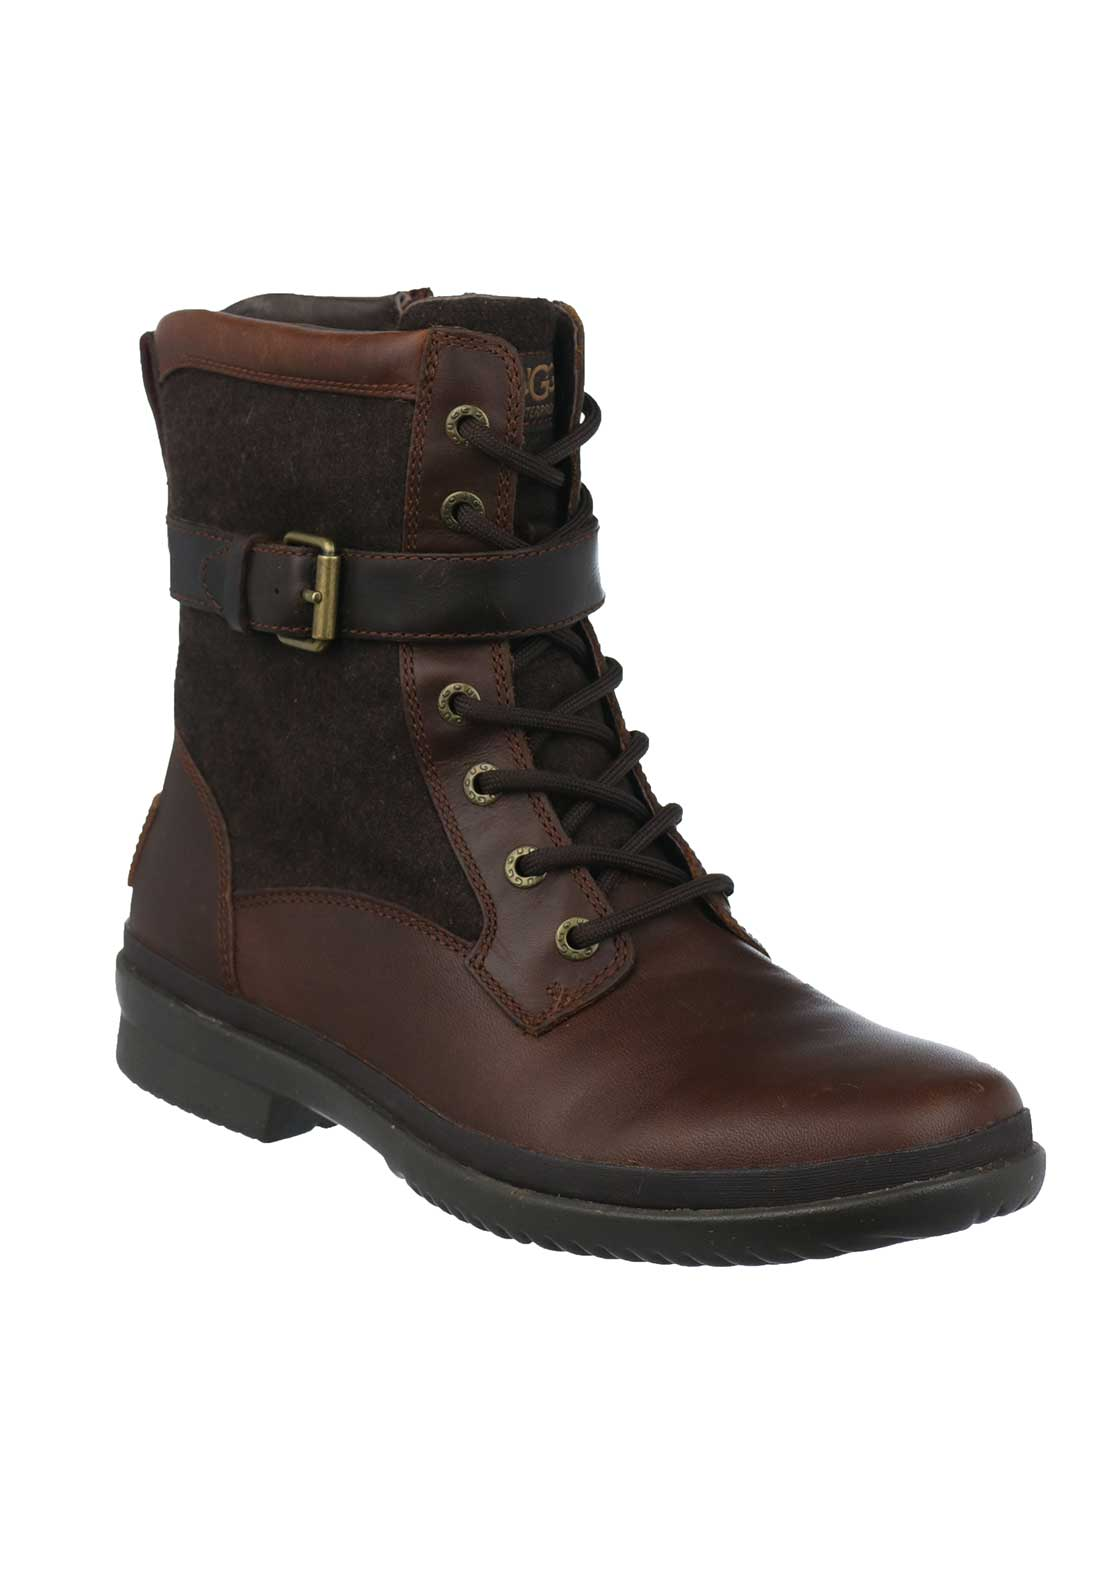 UGG Australia Womens Kesey Leather Laced Boots, Brown